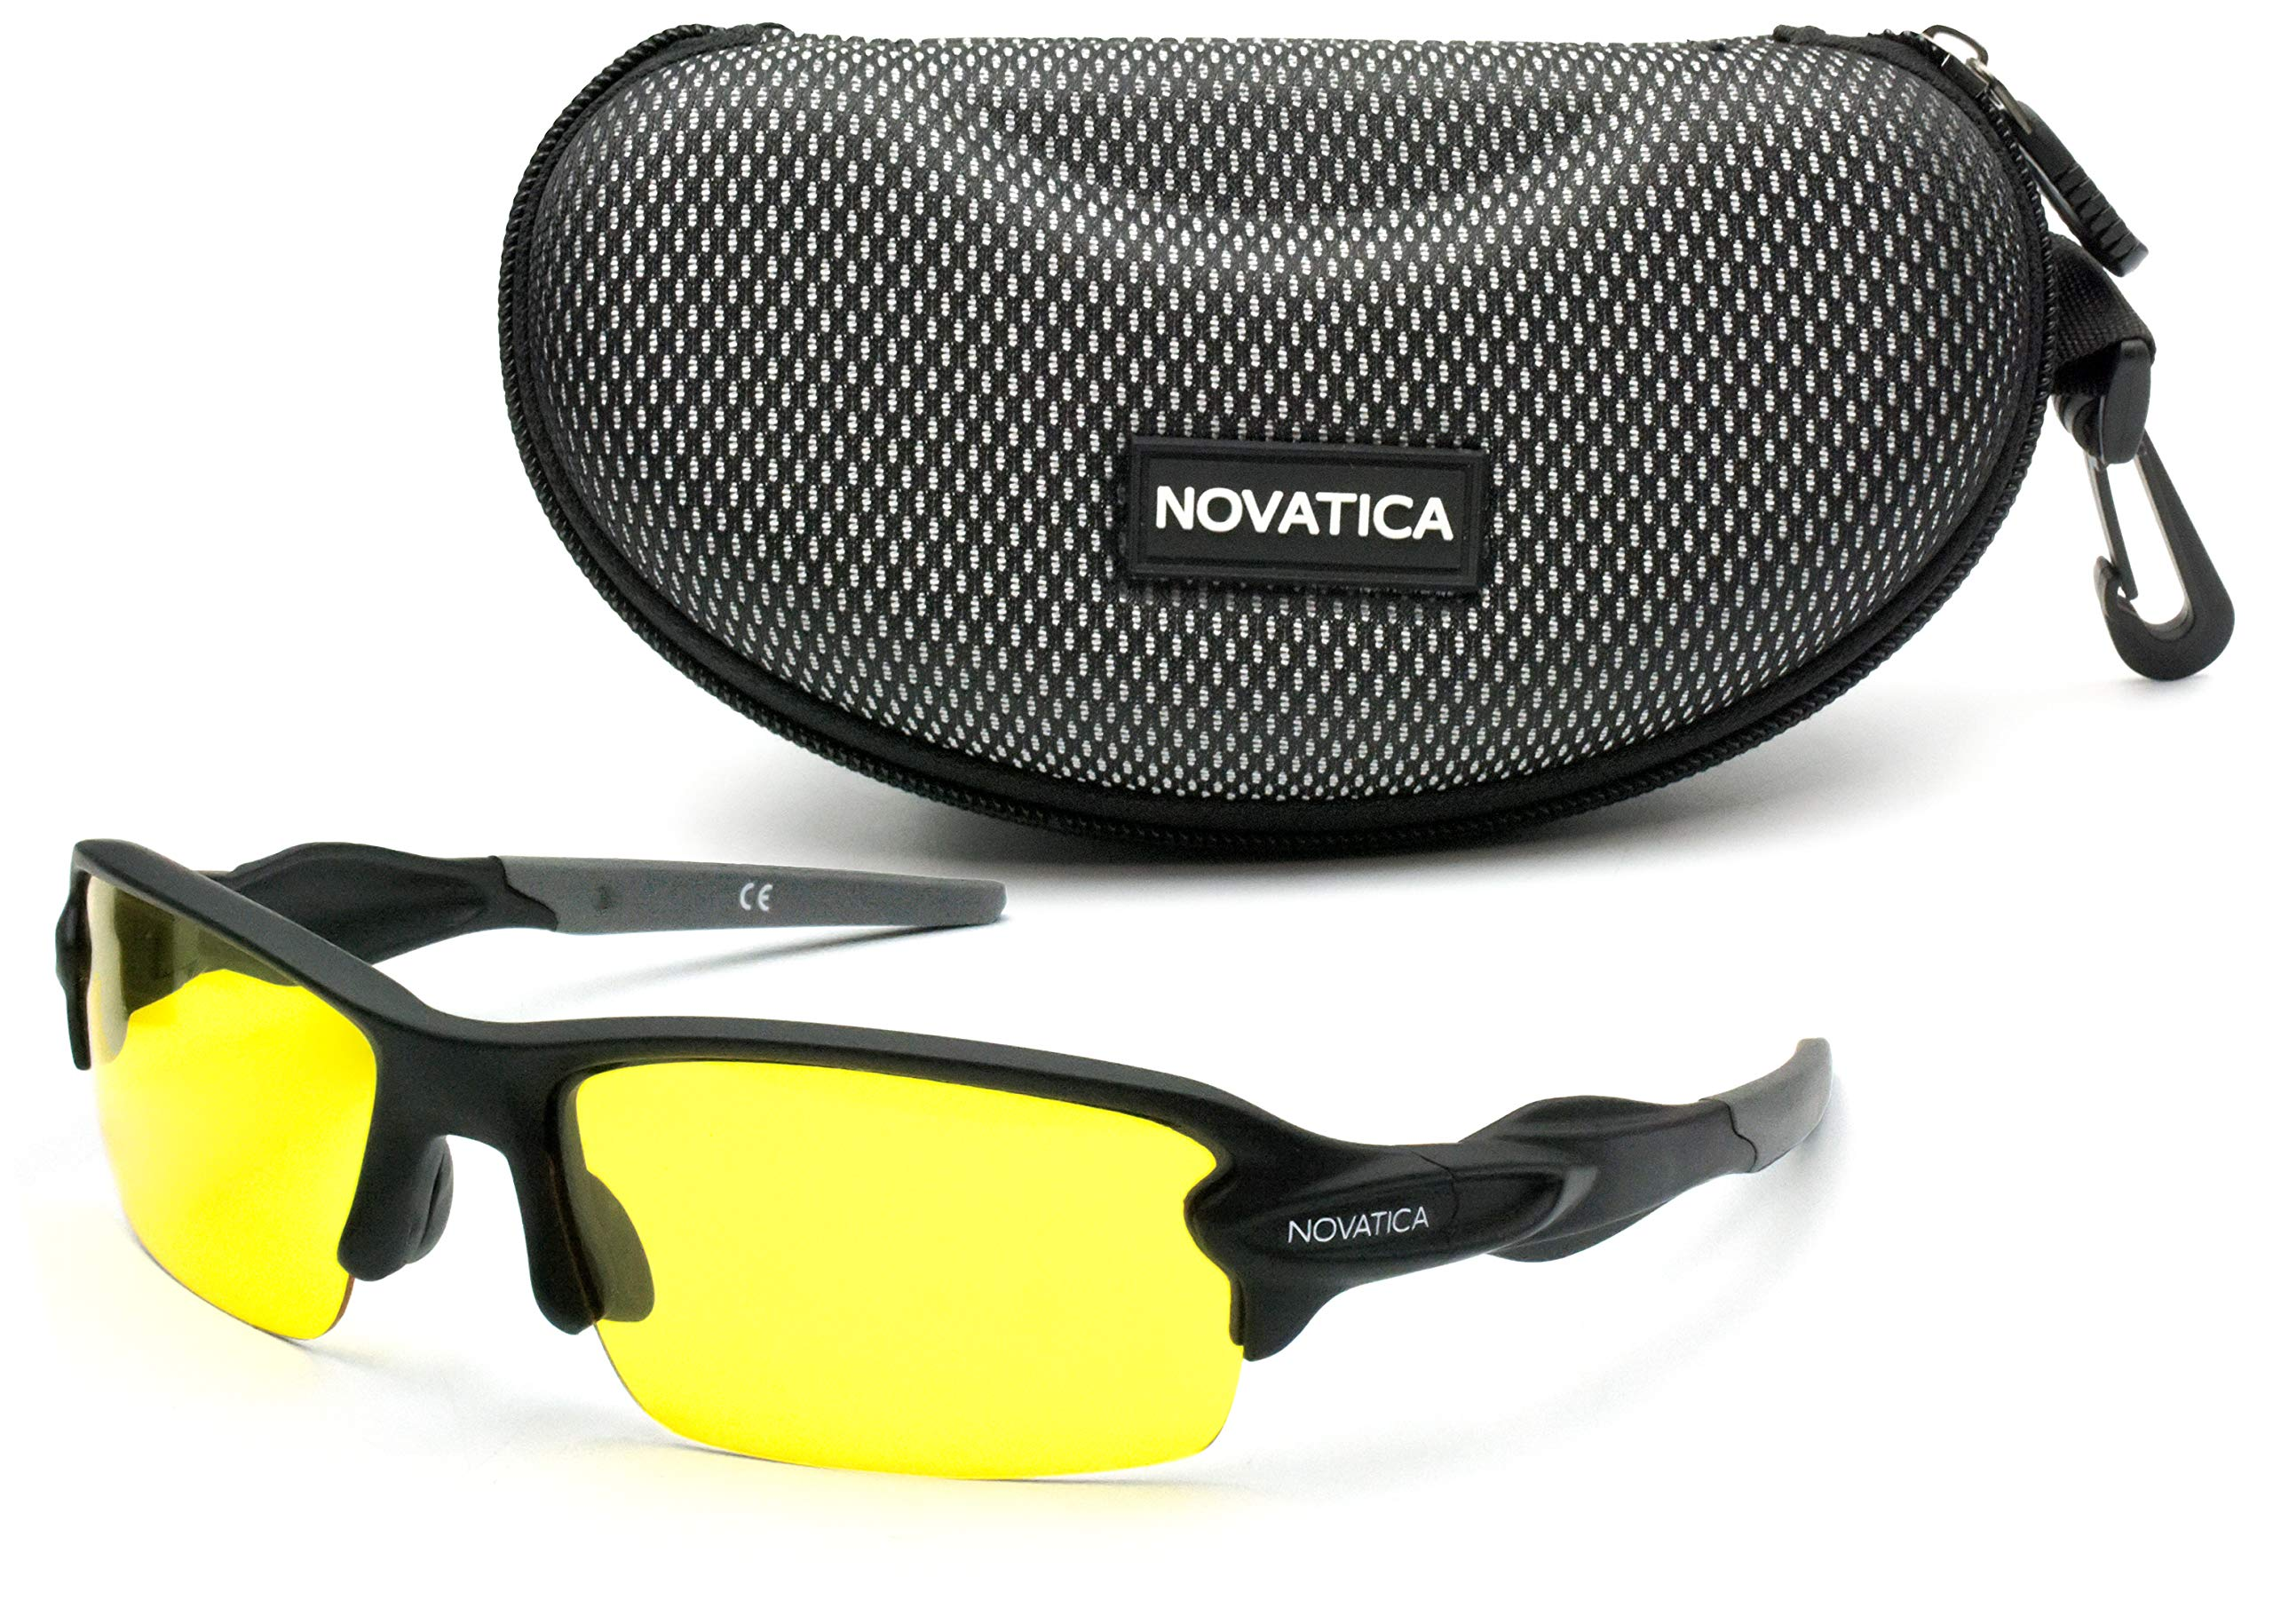 NOVATICA Shooting Glasses for Men Women - Anti Glare Yellow Semi Polarized TAC Glasses - UV Protection - Scratch Impact Resistant Yellow TAC Lenses - Sturdy TR90 Frame & Premium Hard Case by NOVATICA